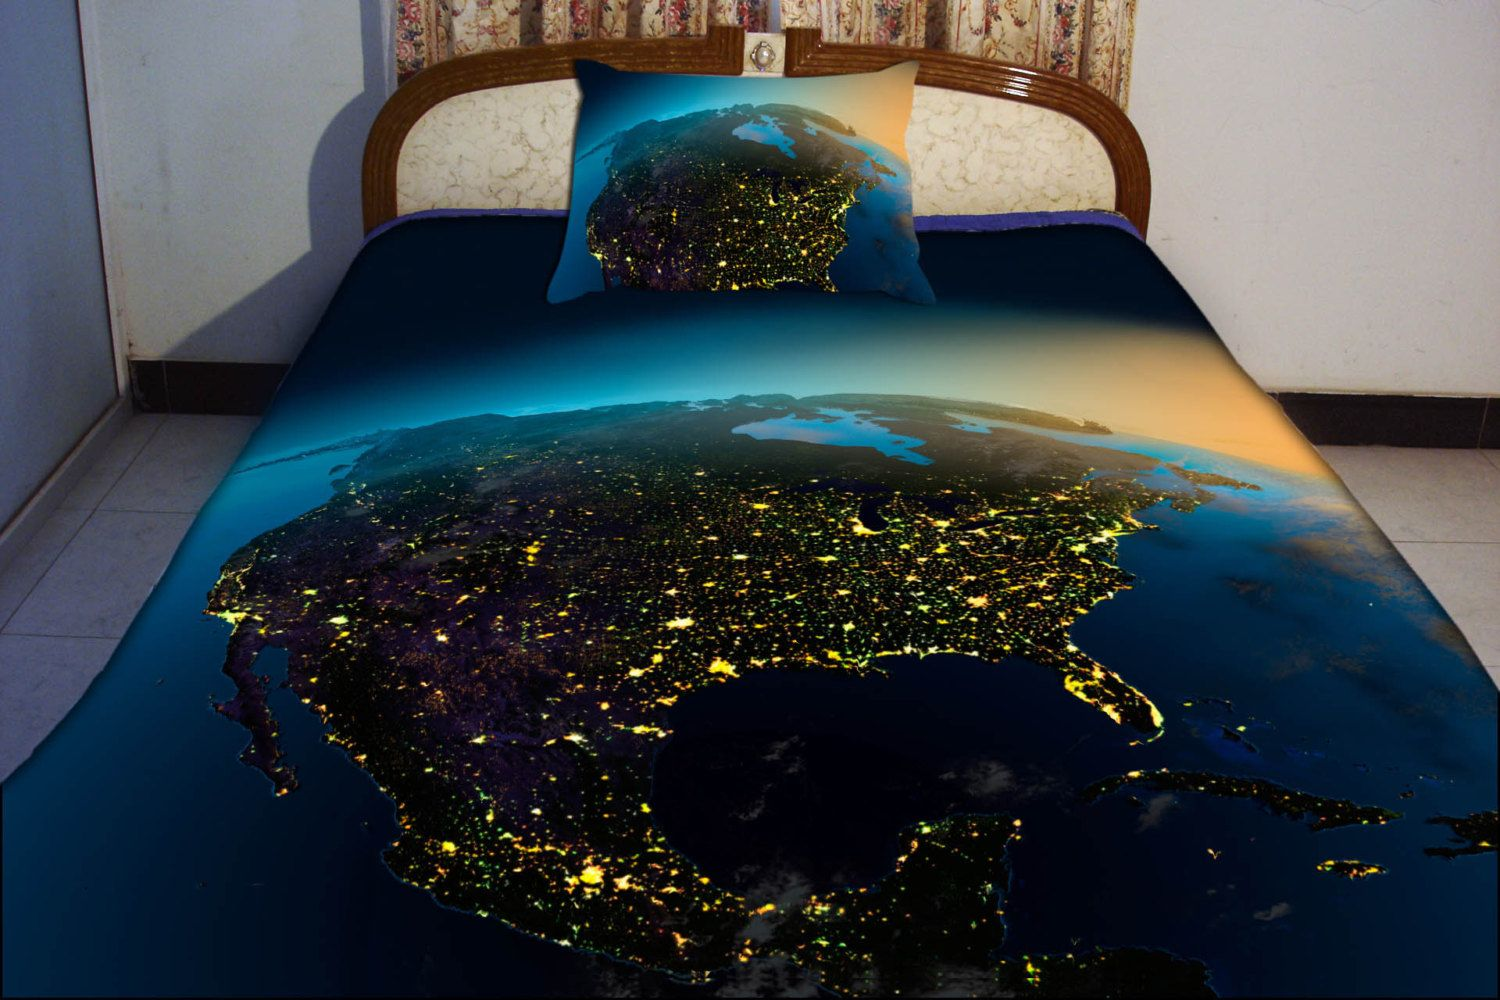 North america night vision map duvet cover us map by tbedding north america night vision map duvet cover us map bedding set map quilt cover and two america map pillow covers us nightlight map comforter gumiabroncs Images